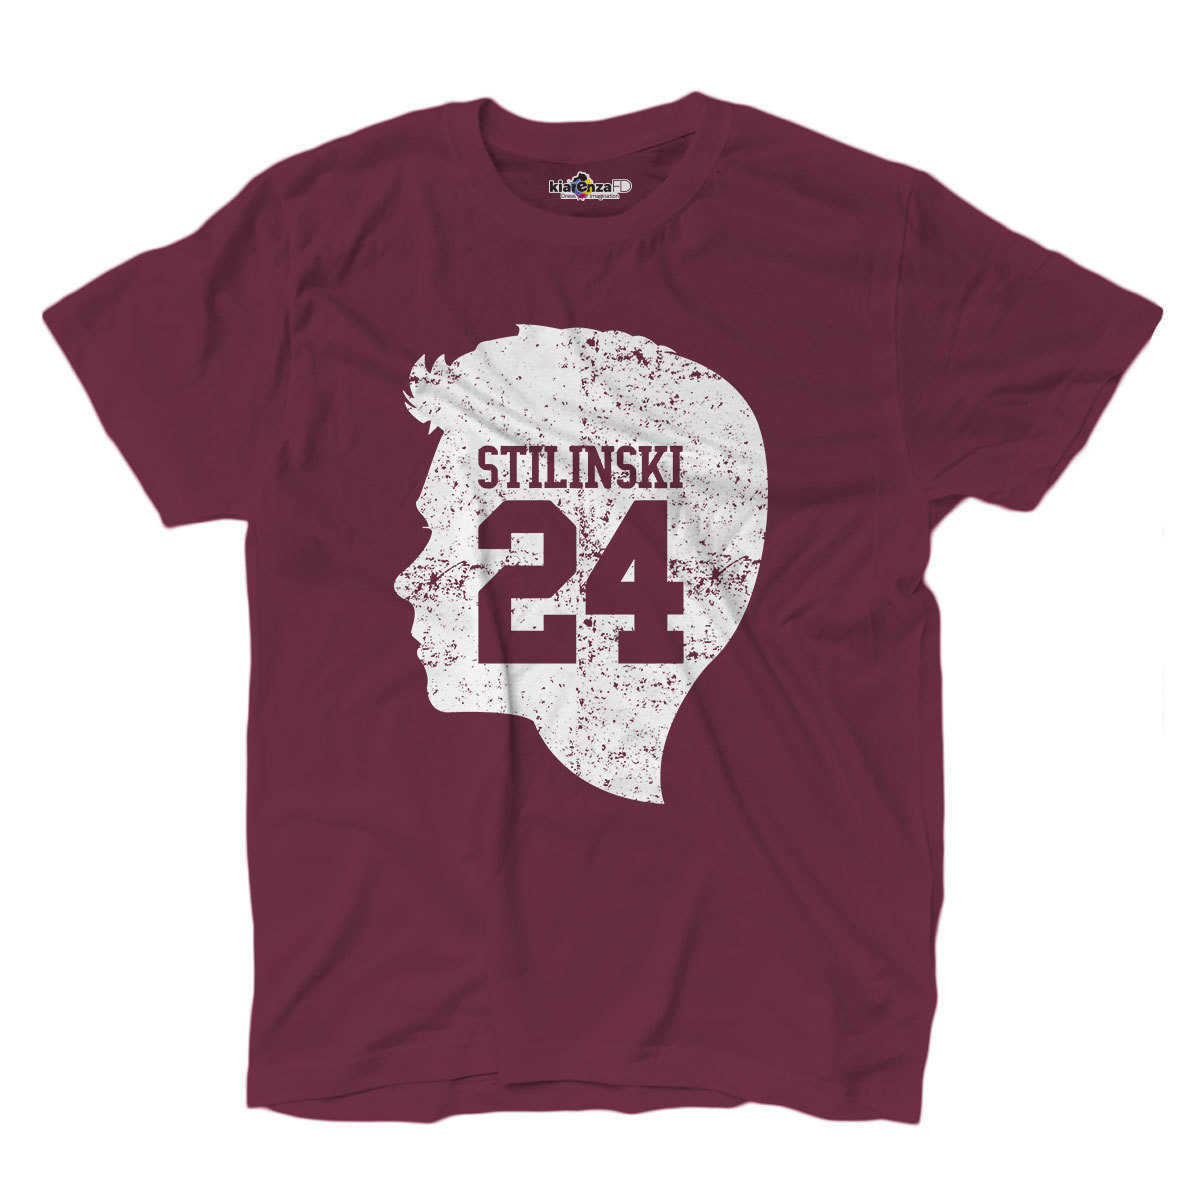 T-shirt Beacon Hill Face Lacrosse Stilinski Teen Movie Wolf TV Series S Burgundy image